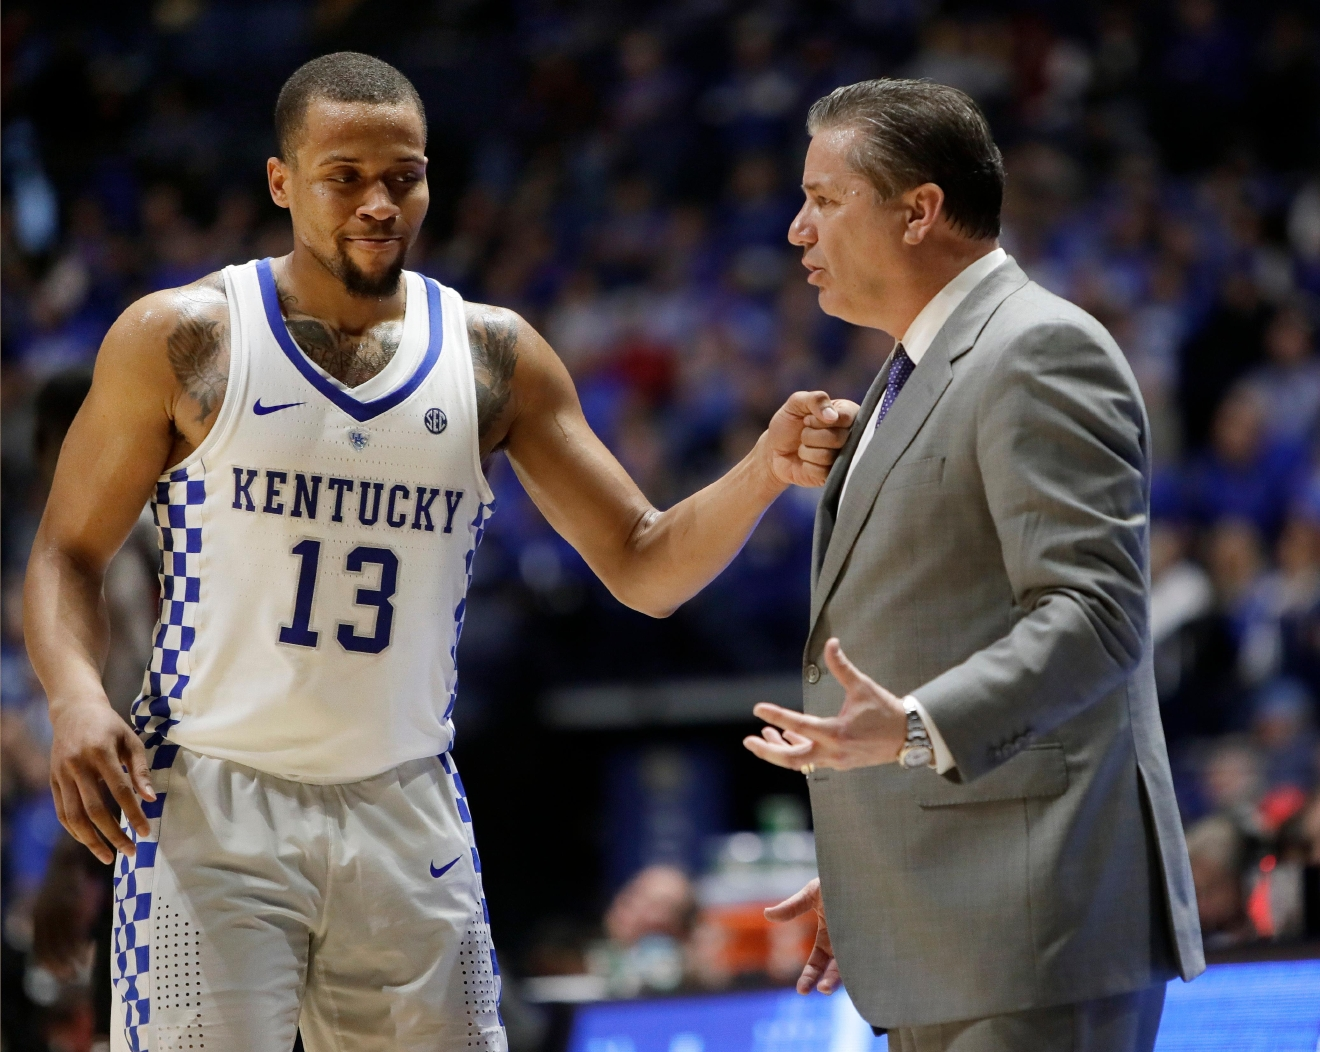 Kentucky guard Isaiah Briscoe (13) taps head coach John Calipari on the chest late in the second half of an NCAA college basketball game against Georgia at the Southeastern Conference tournament Friday, March 10, 2017, in Nashville, Tenn. Kentucky won 71-60. (AP Photo/Wade Payne)